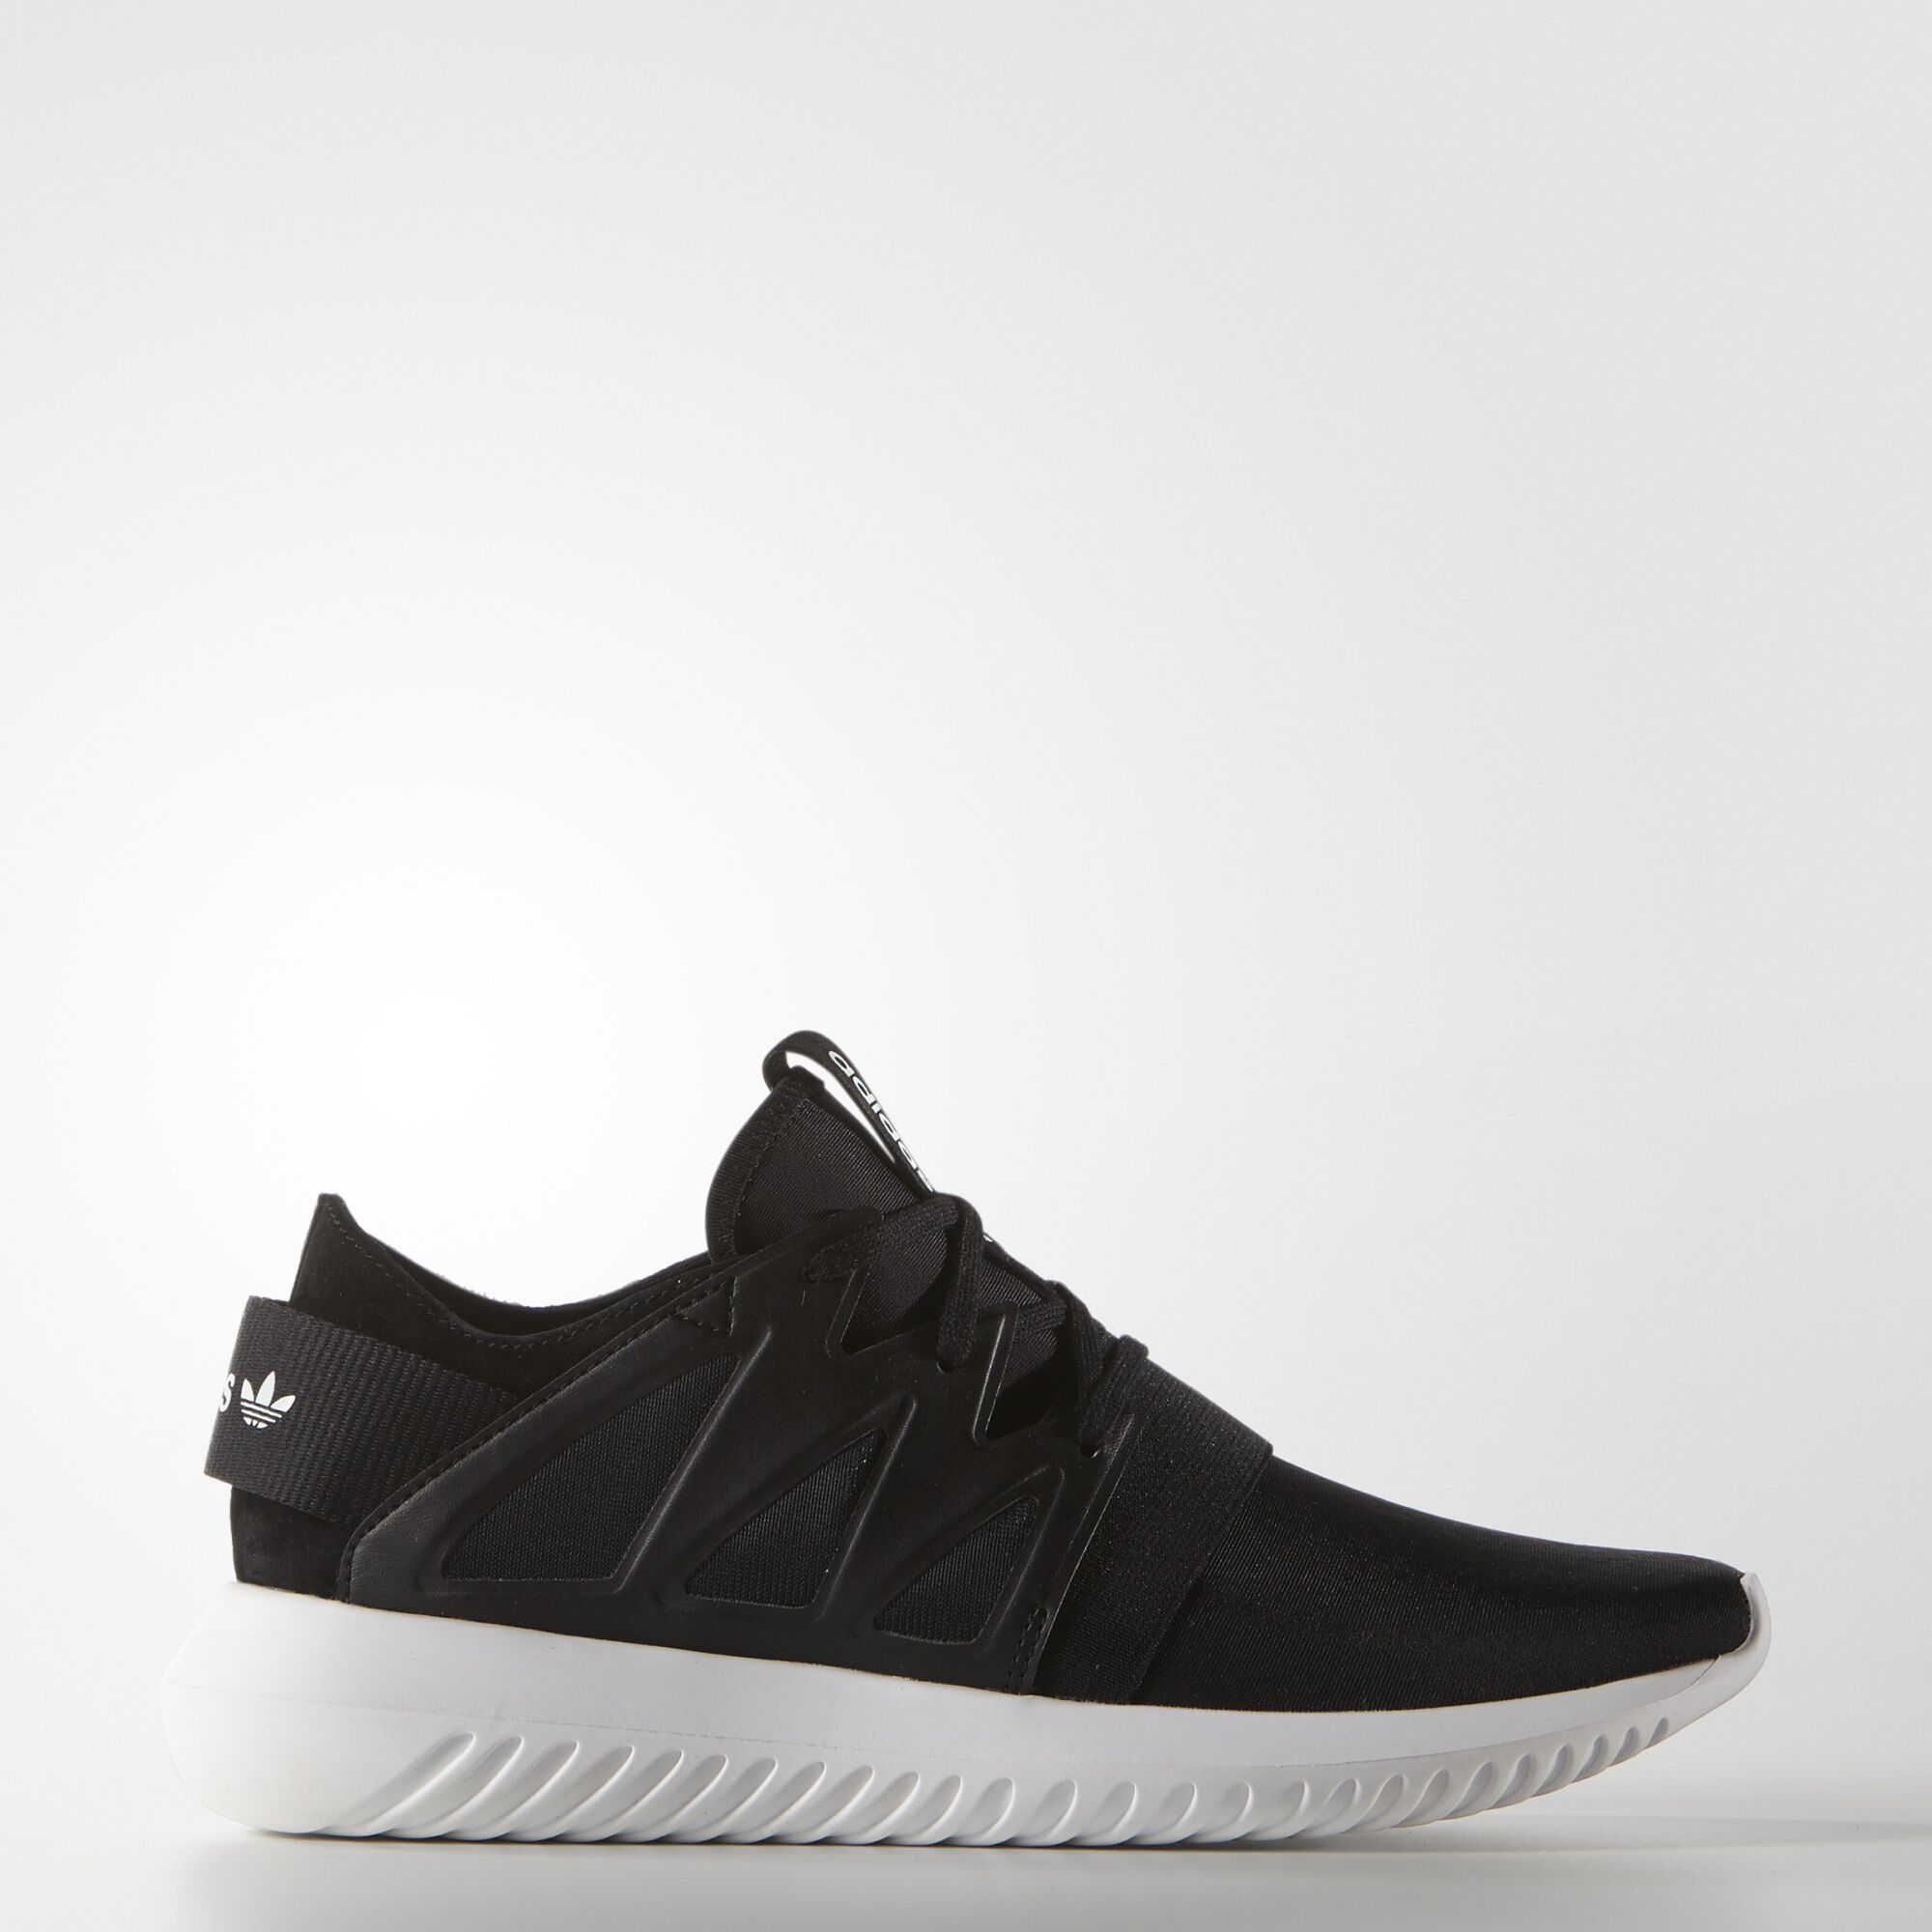 Adidas Originals Tubular Viral Women's Running Shoes Red